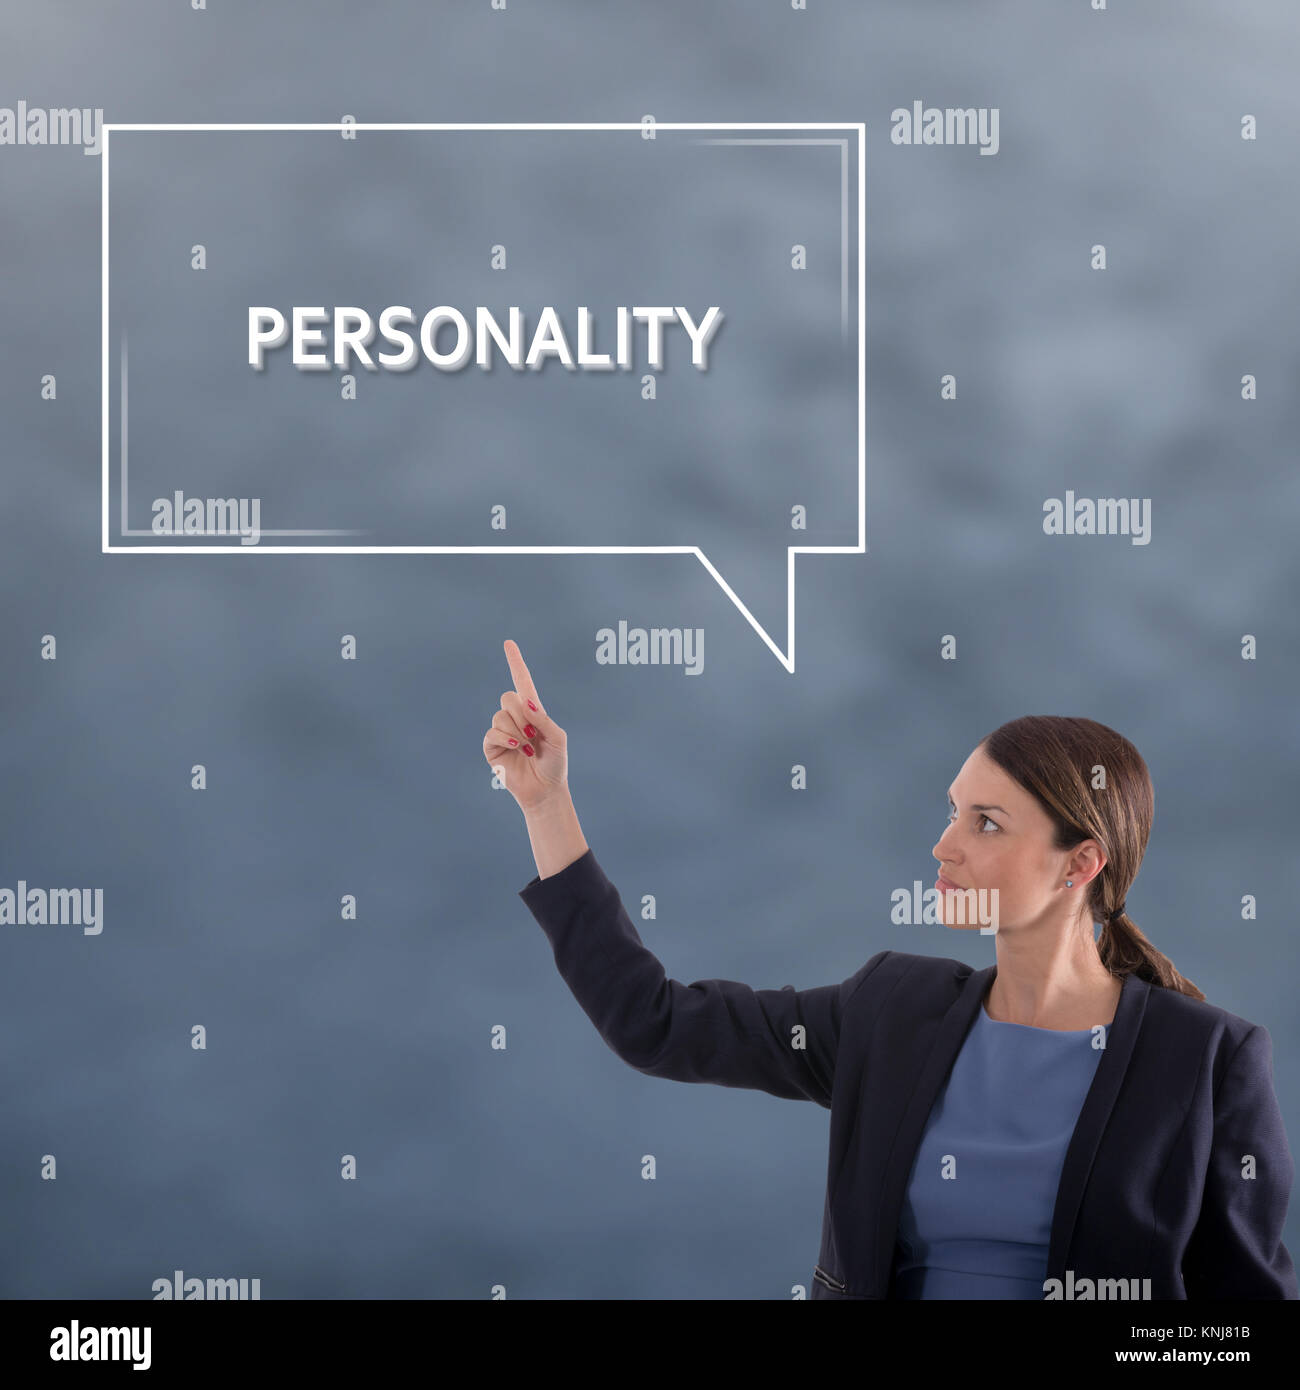 PERSONALITY Business Concept. Business Woman Graphic Concept - Stock Image